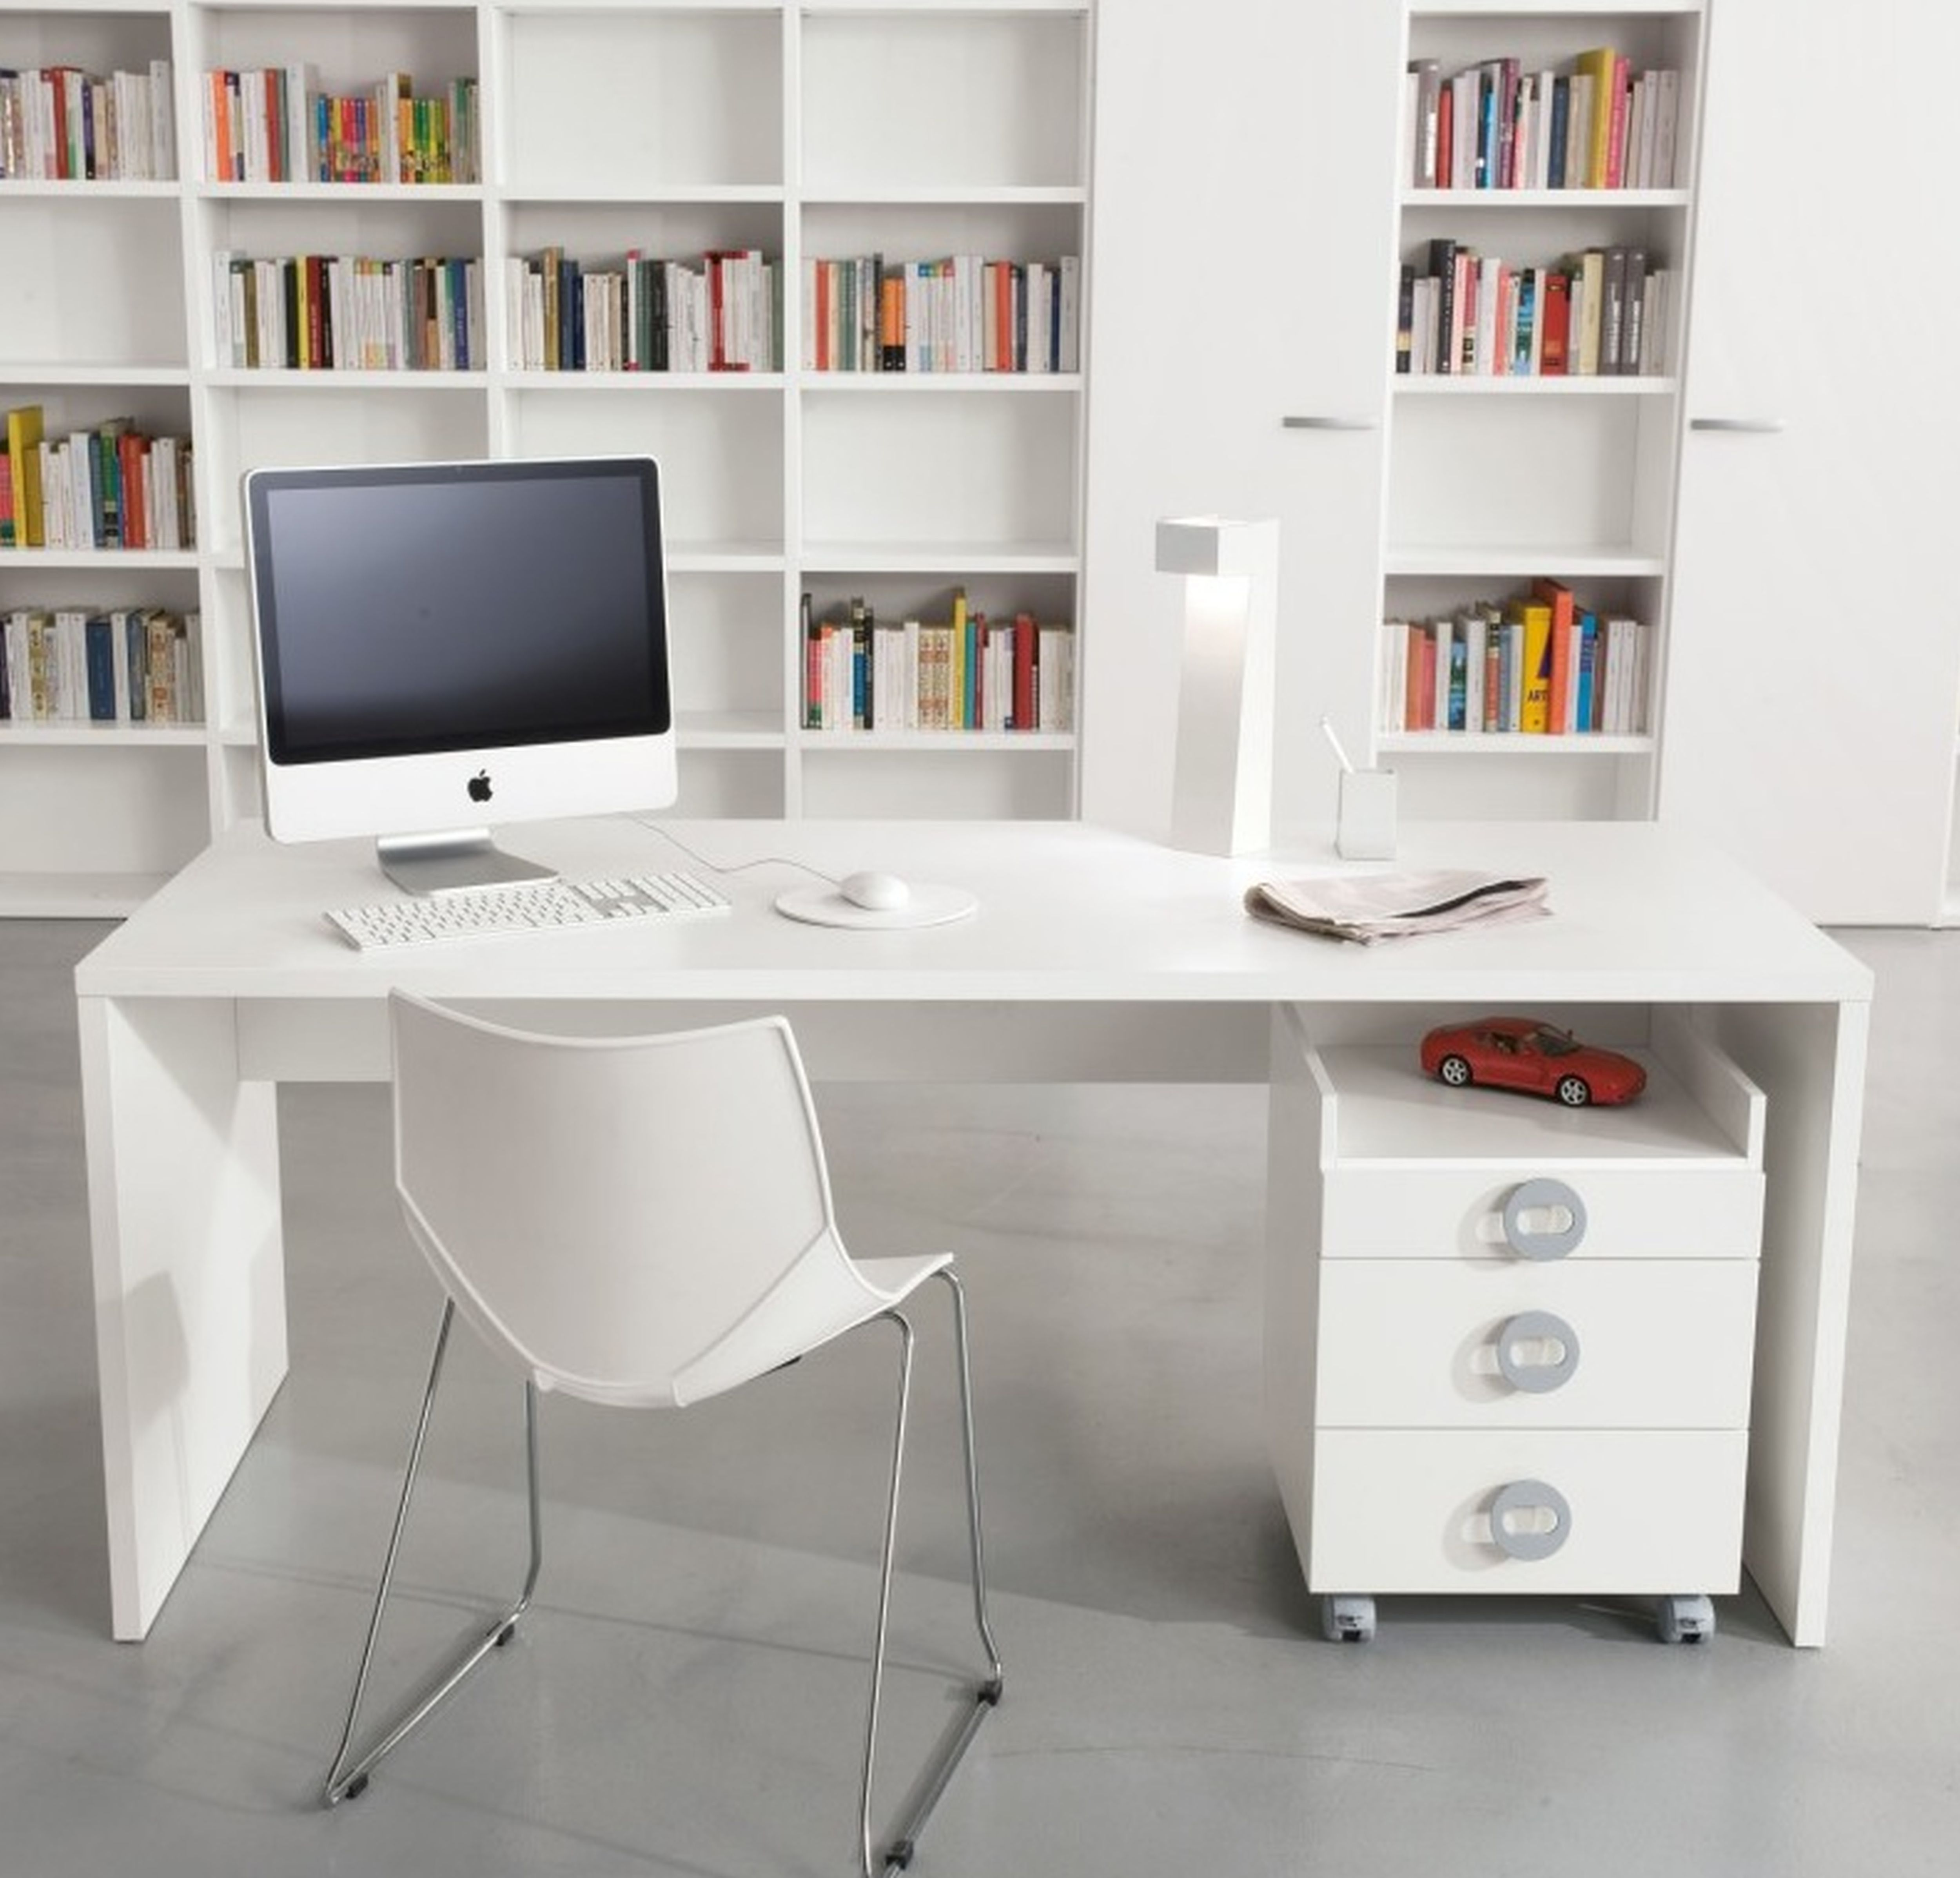 Simple But Mesmerizing Small Home Office Interior Design In White Theme  With Minimalist White Computer Desk. Simple But Mesmerizing Small Home Office Interior Design In White